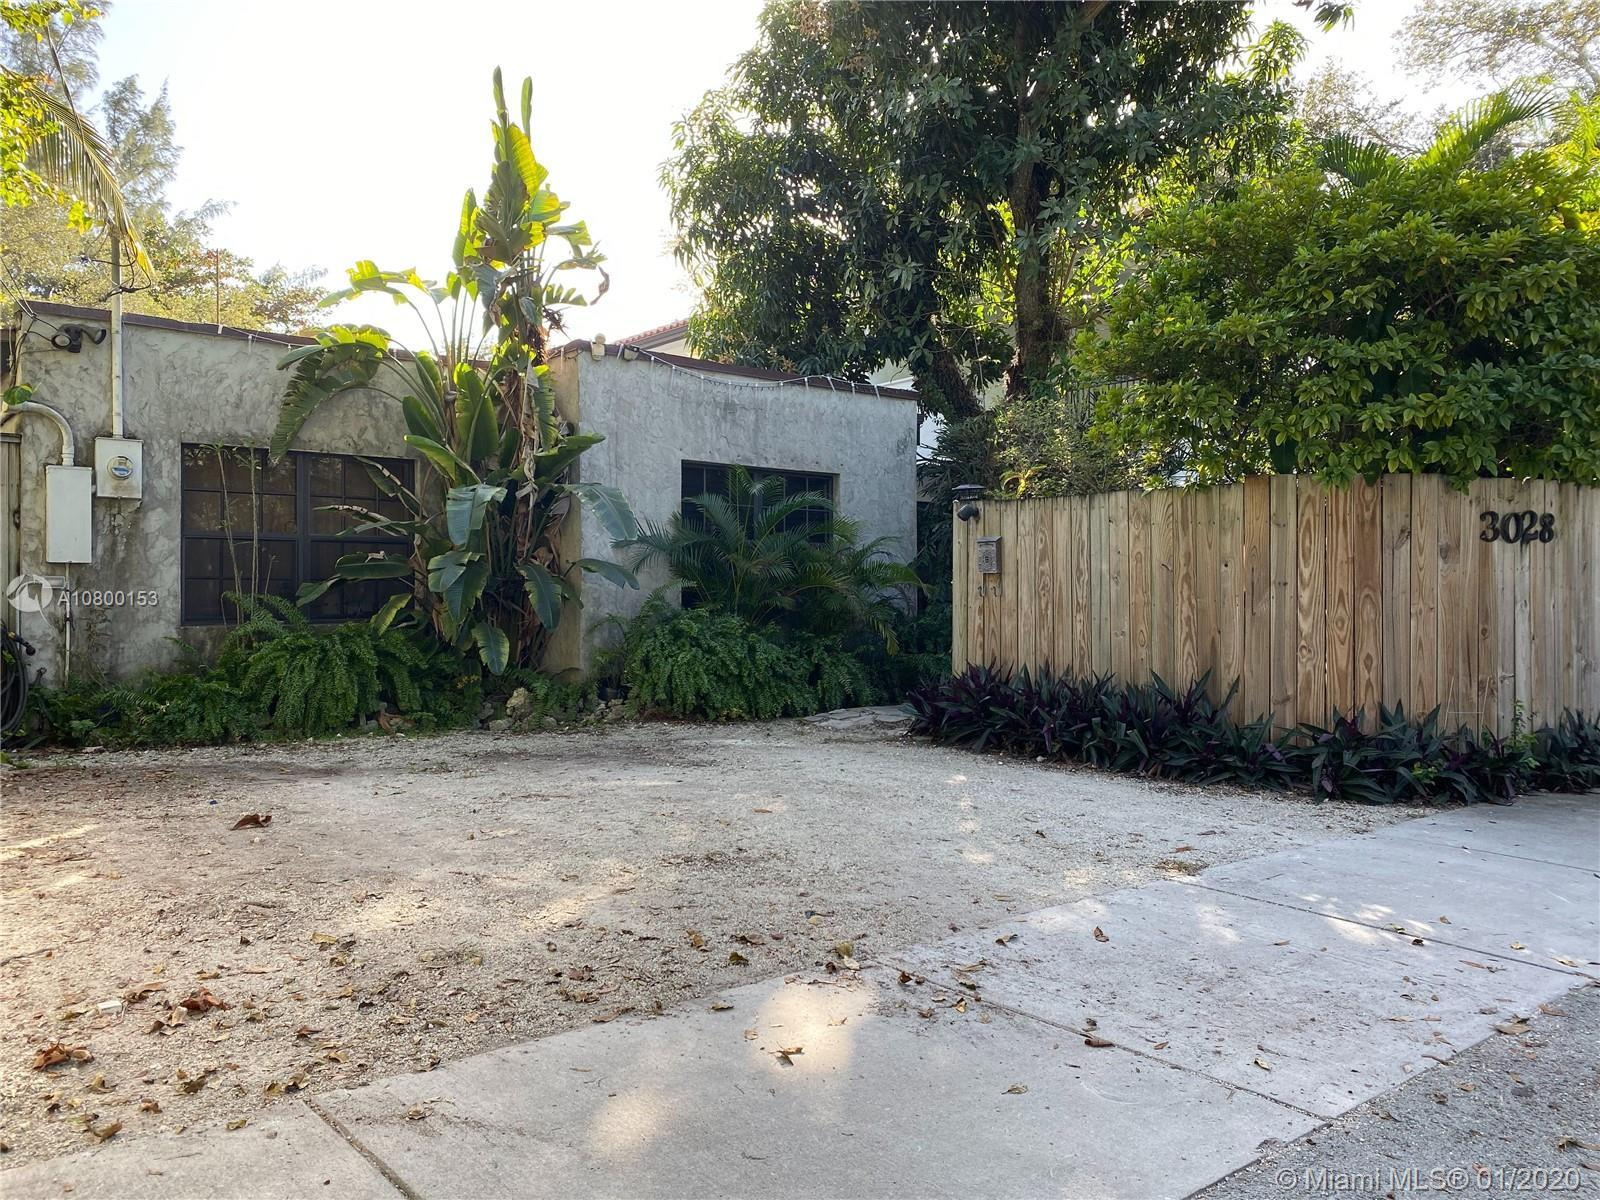 This unique property in the heart of the grove has great opportunity. Situate yourself directly acro